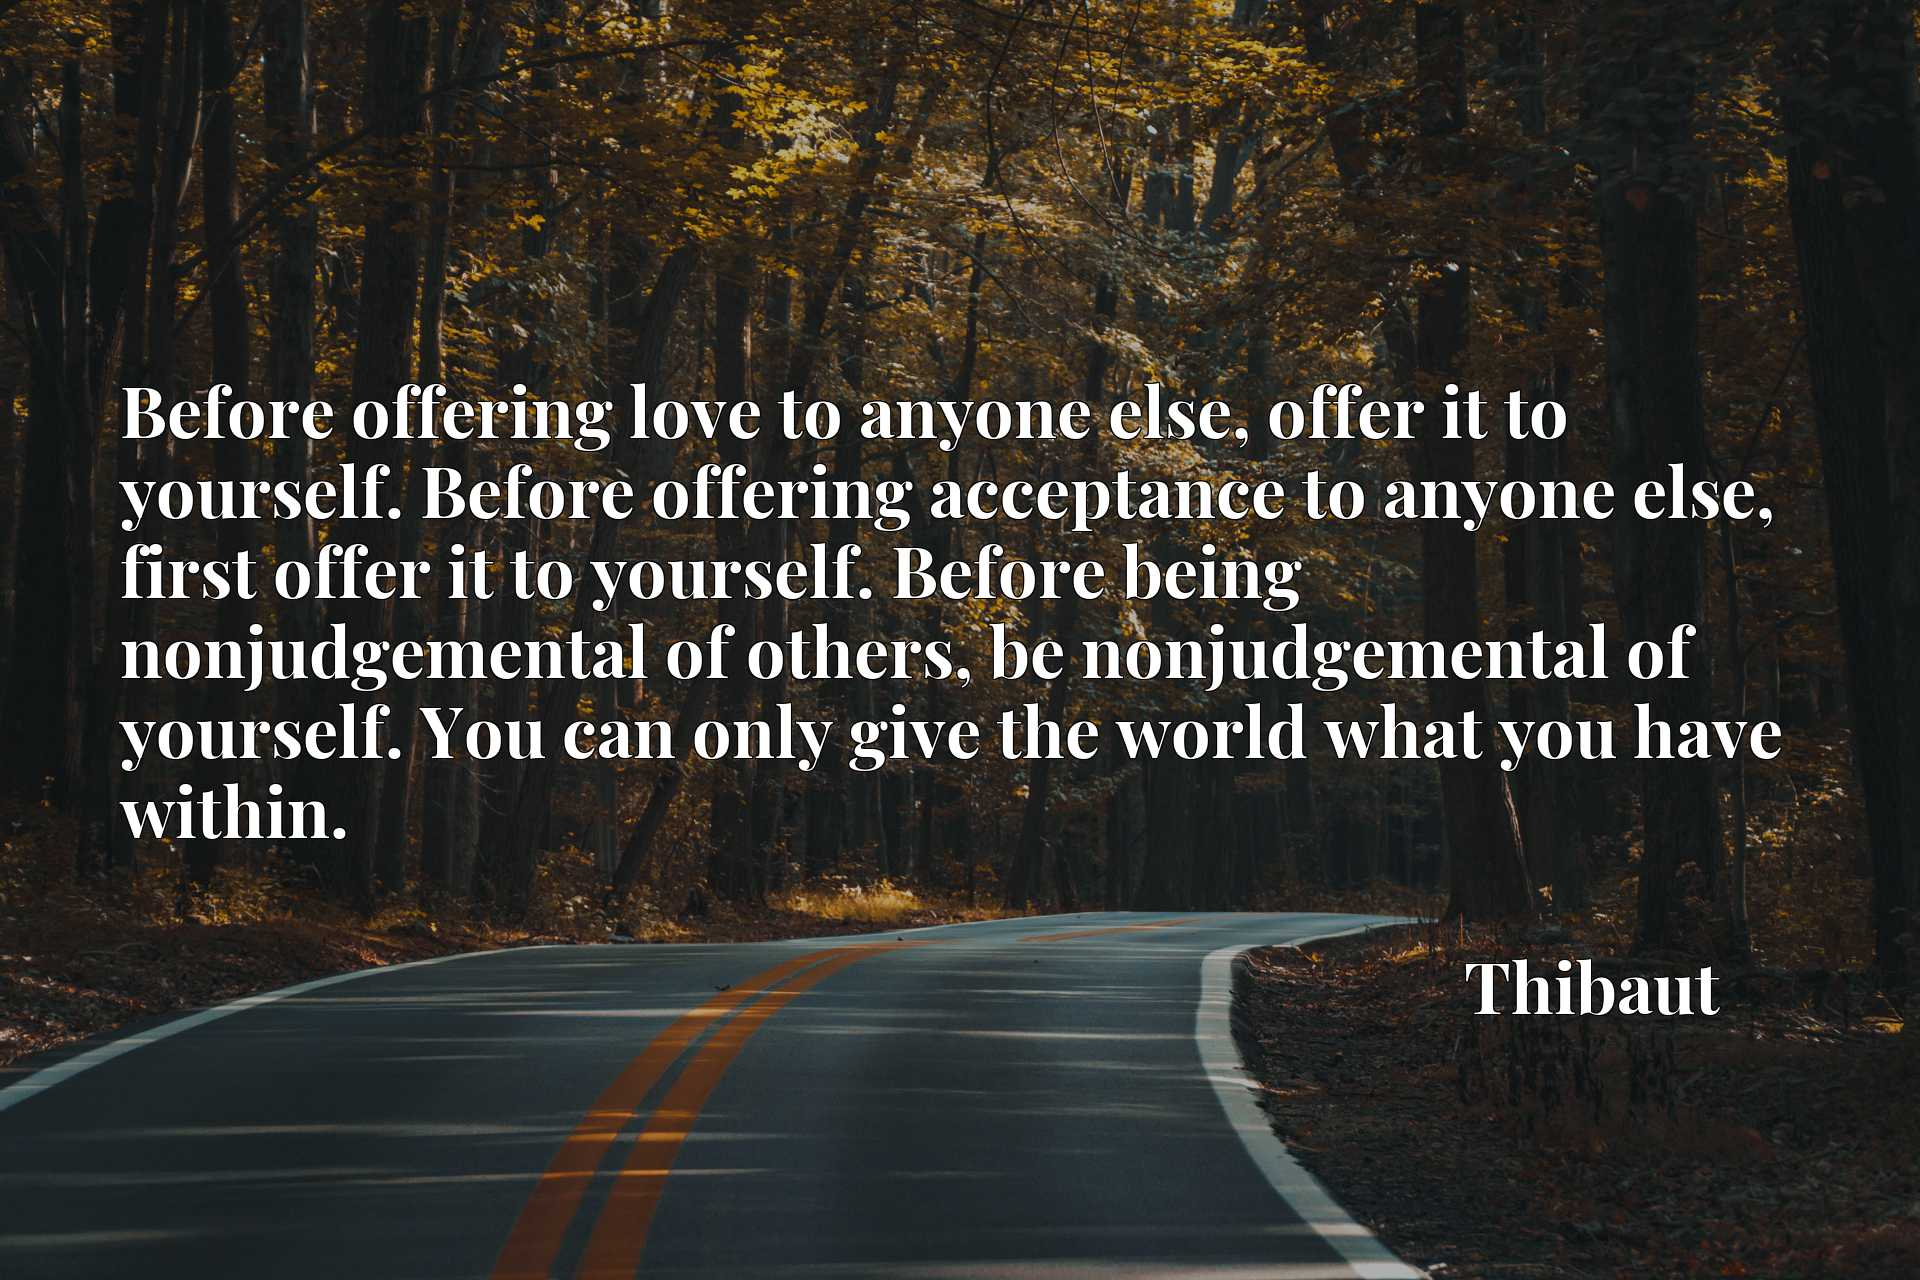 Before offering love to anyone else, offer it to yourself. Before offering acceptance to anyone else, first offer it to yourself. Before being nonjudgemental of others, be nonjudgemental of yourself. You can only give the world what you have within.